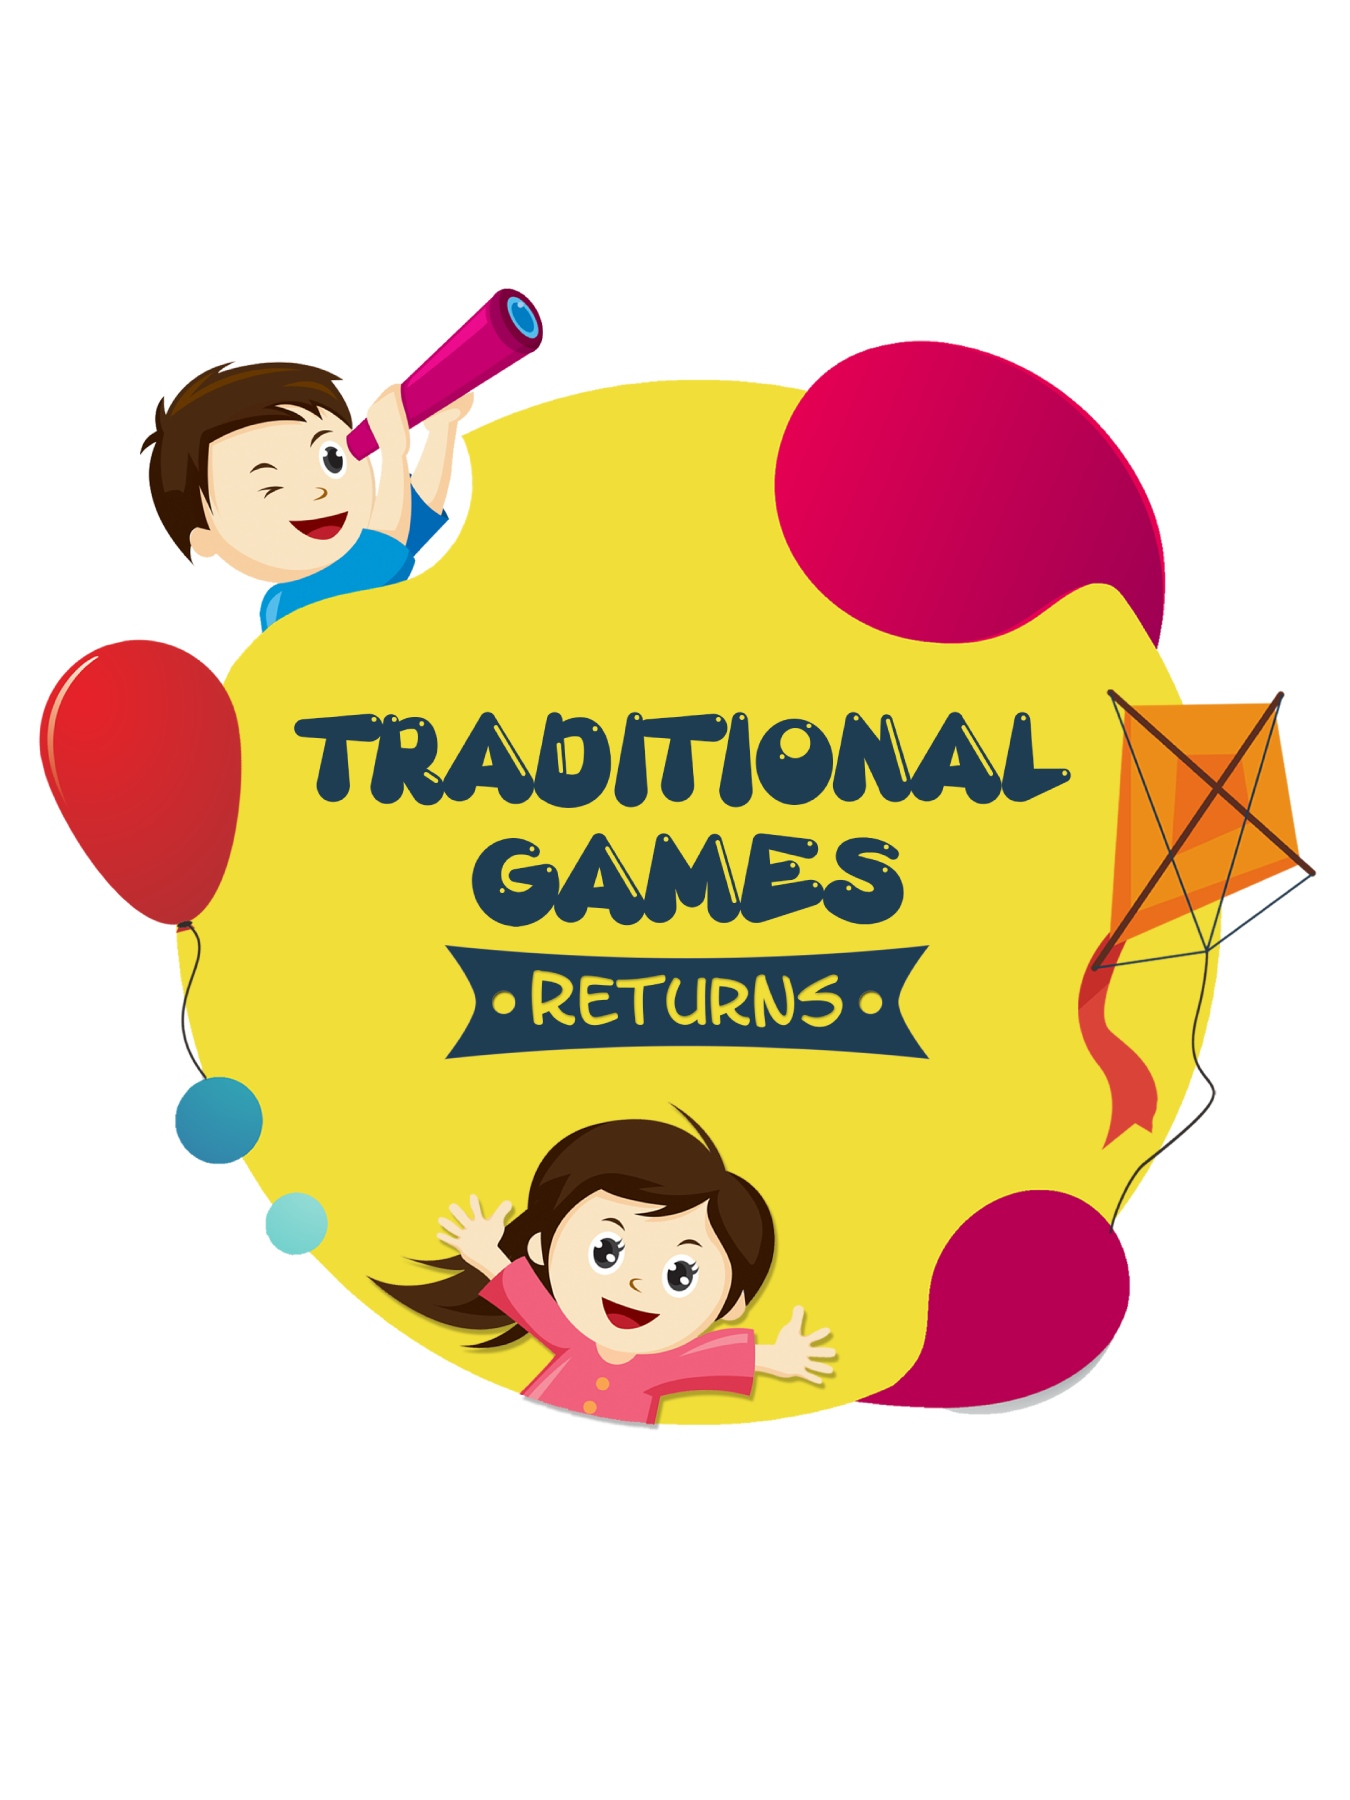 Traditional Games Return